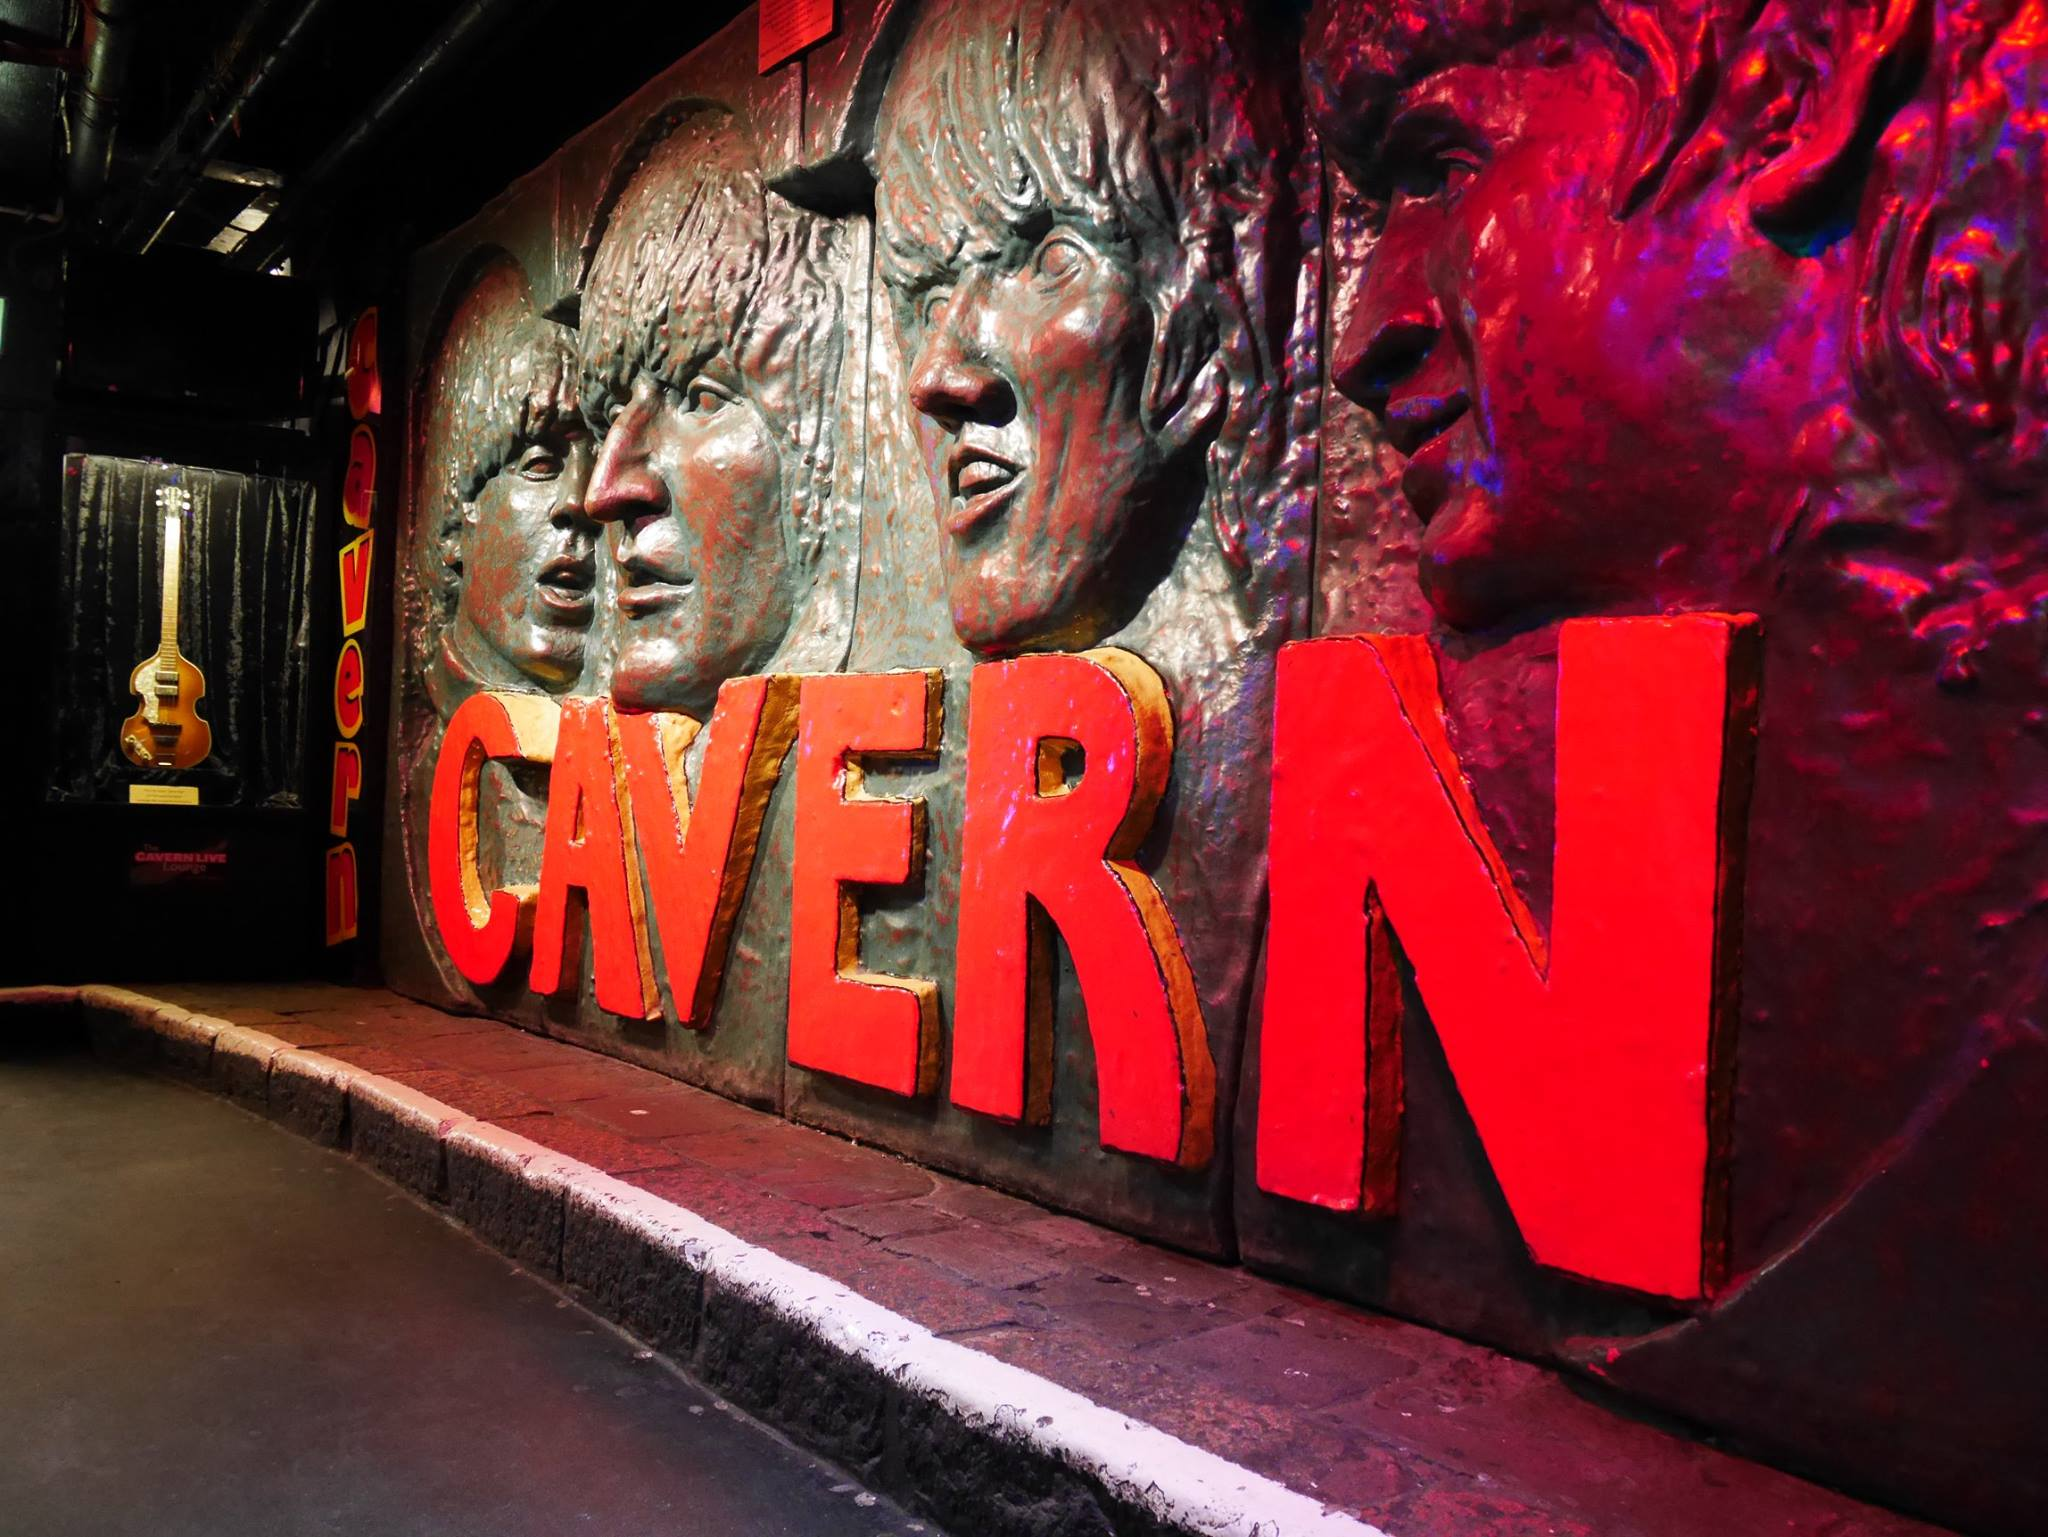 Party Universities, with an image of the sign for Cavern Club with the Beatles heads carved in to the wall